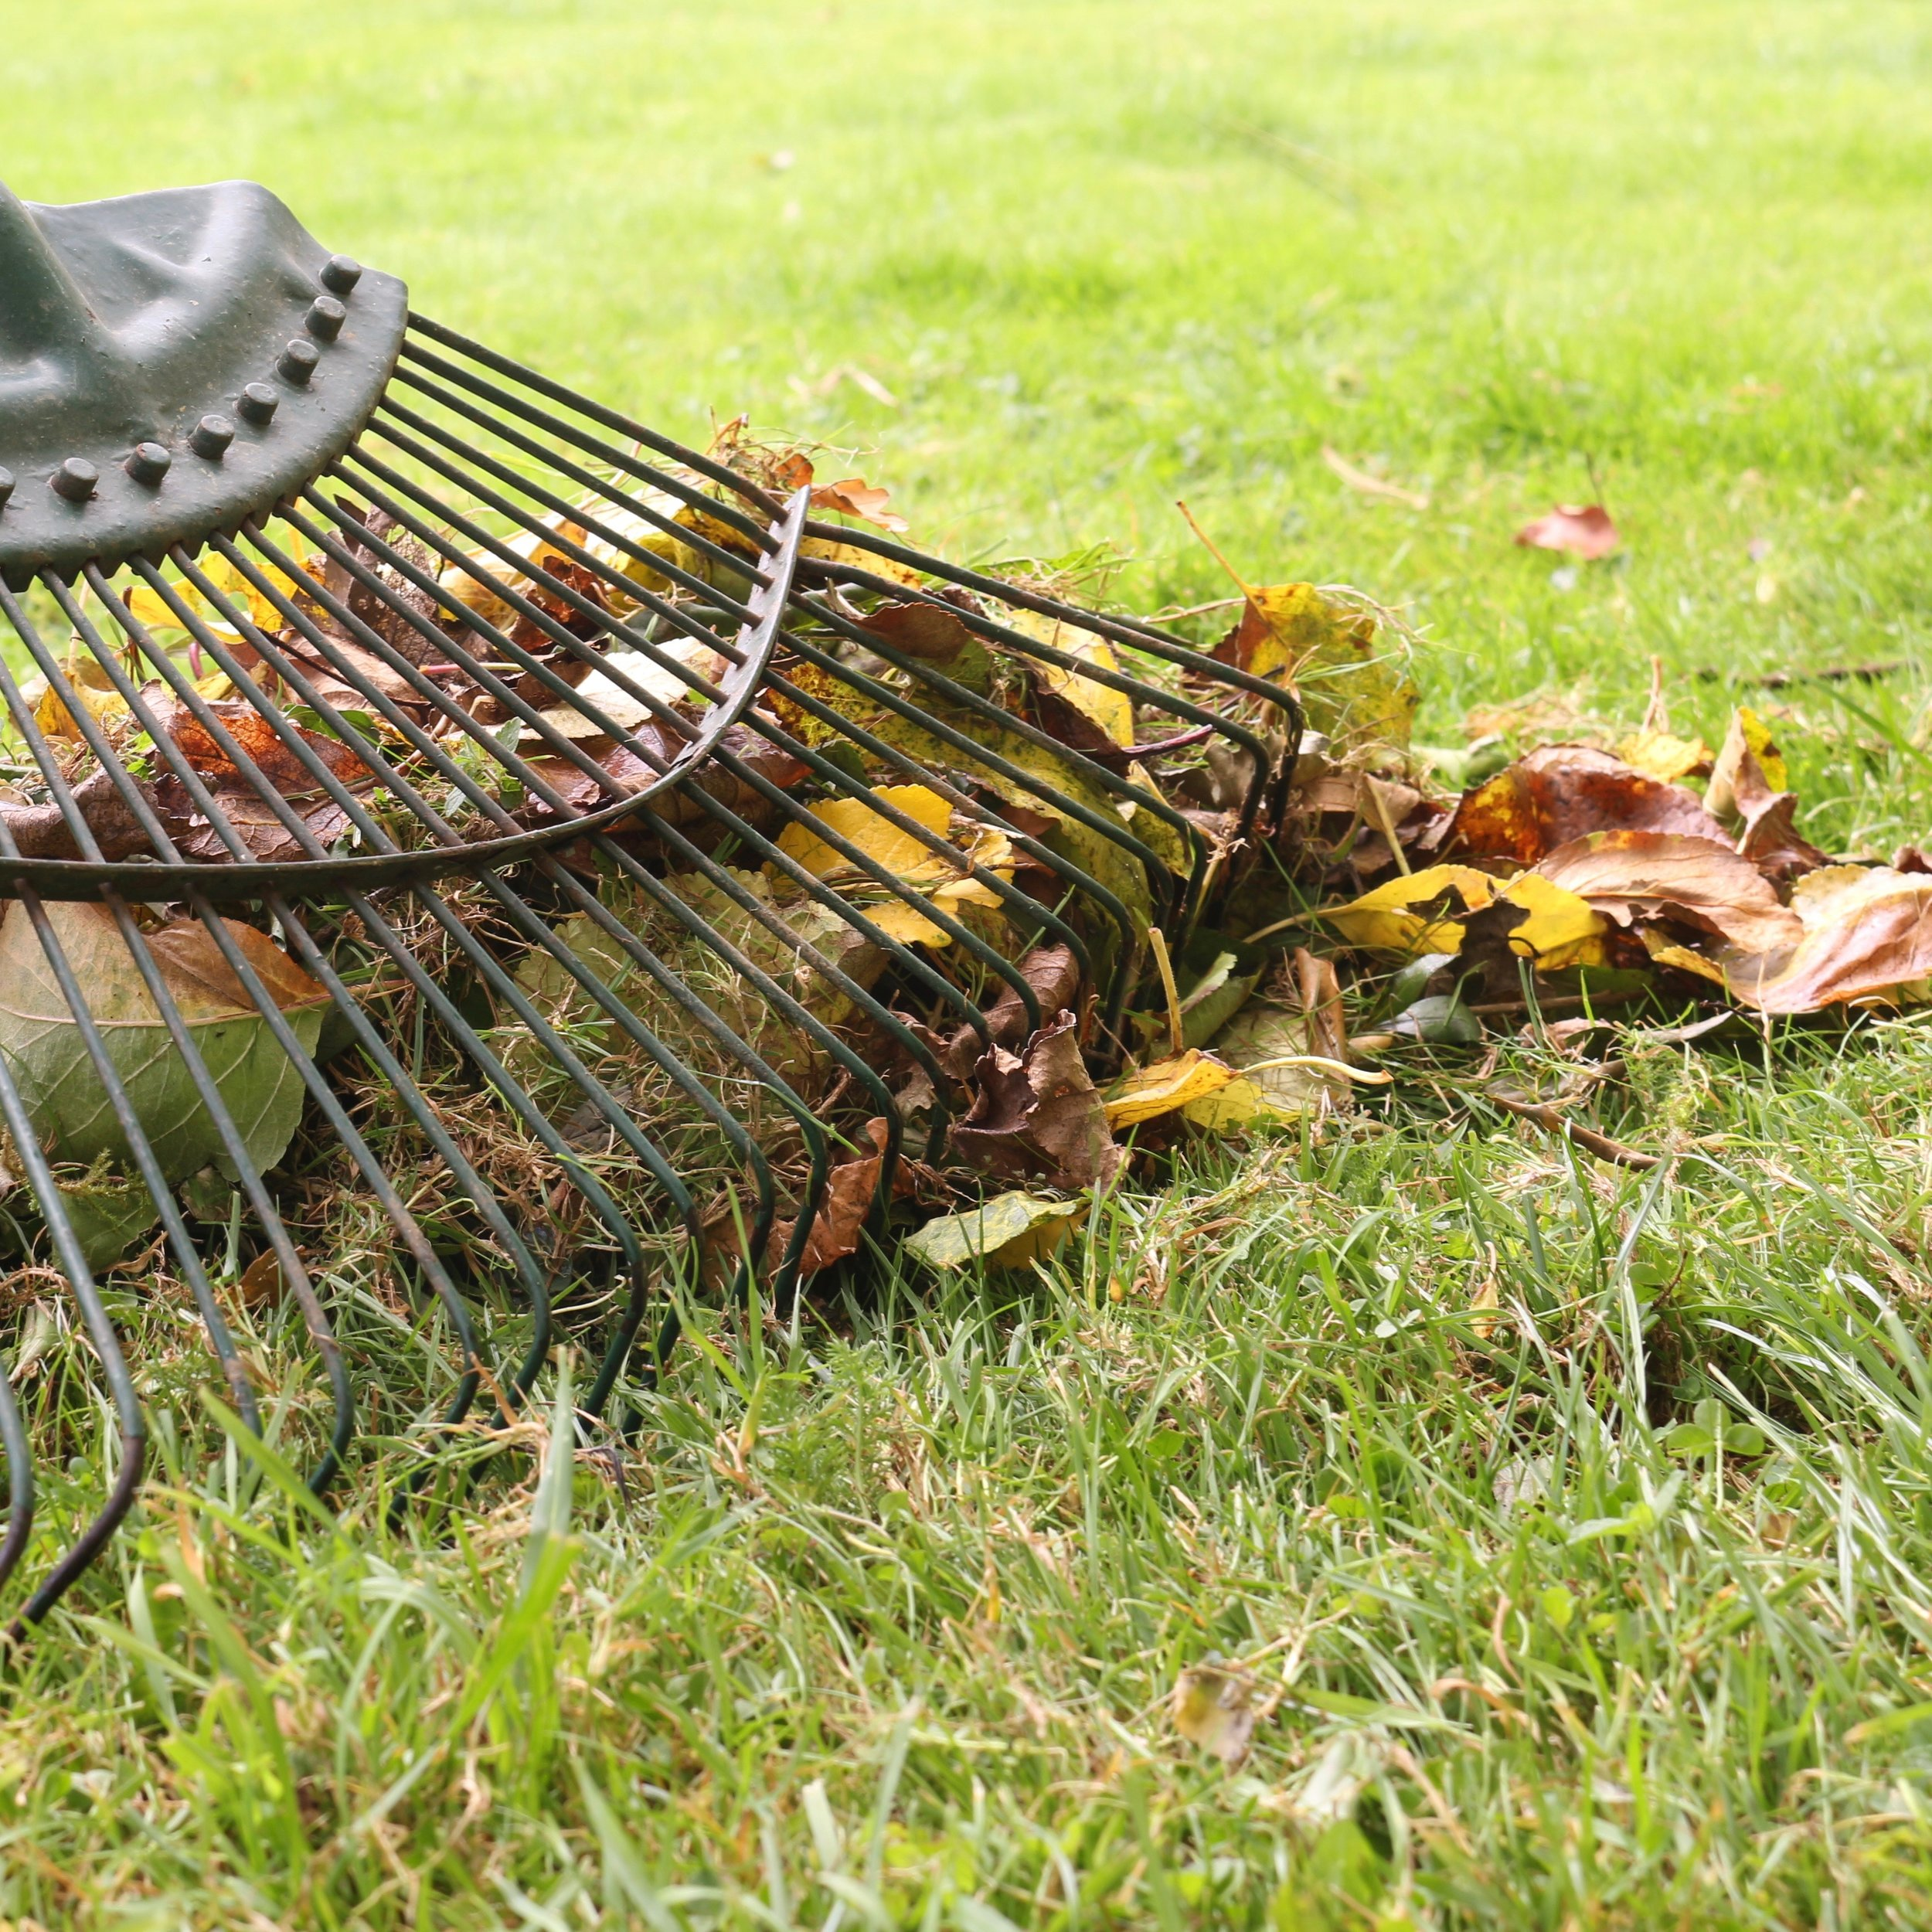 Spring clean. - Rake up leaves and debris (but wait until the ground is dry to avoid making the ground uneven).